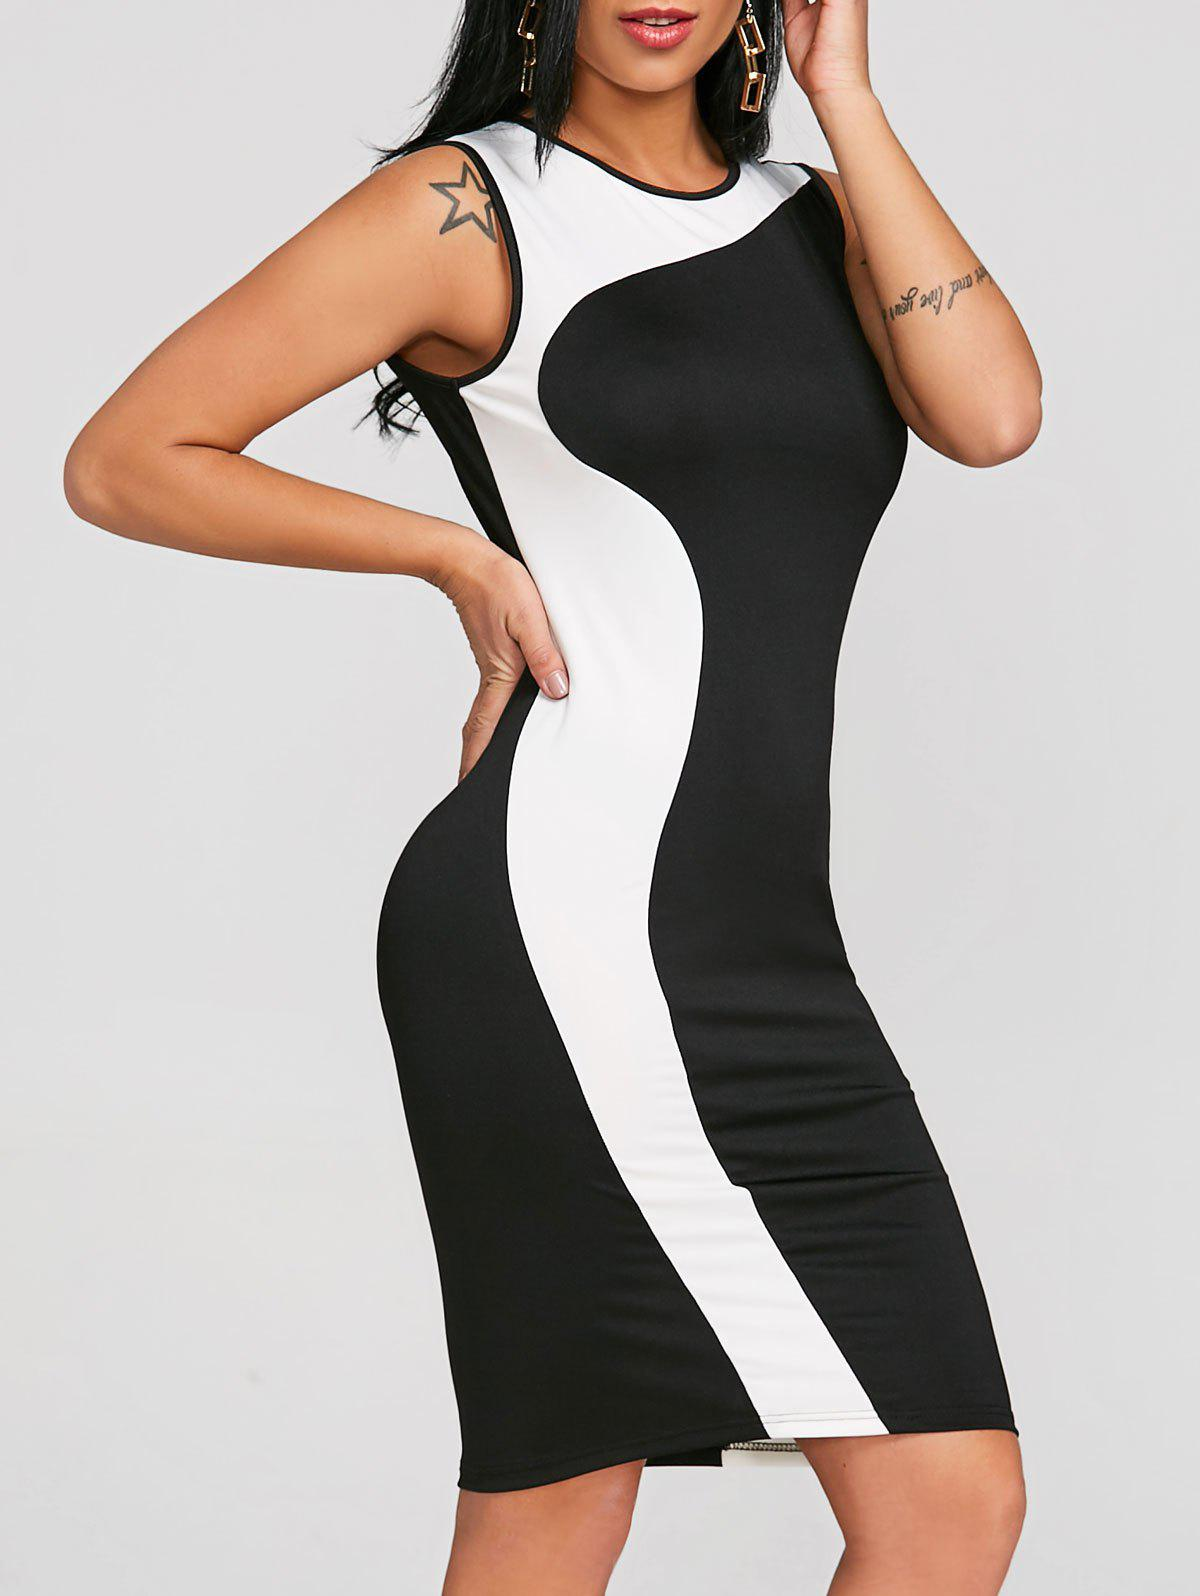 Color Trim Sleeveless Bodycon Dress - WHITE/BLACK 2XL